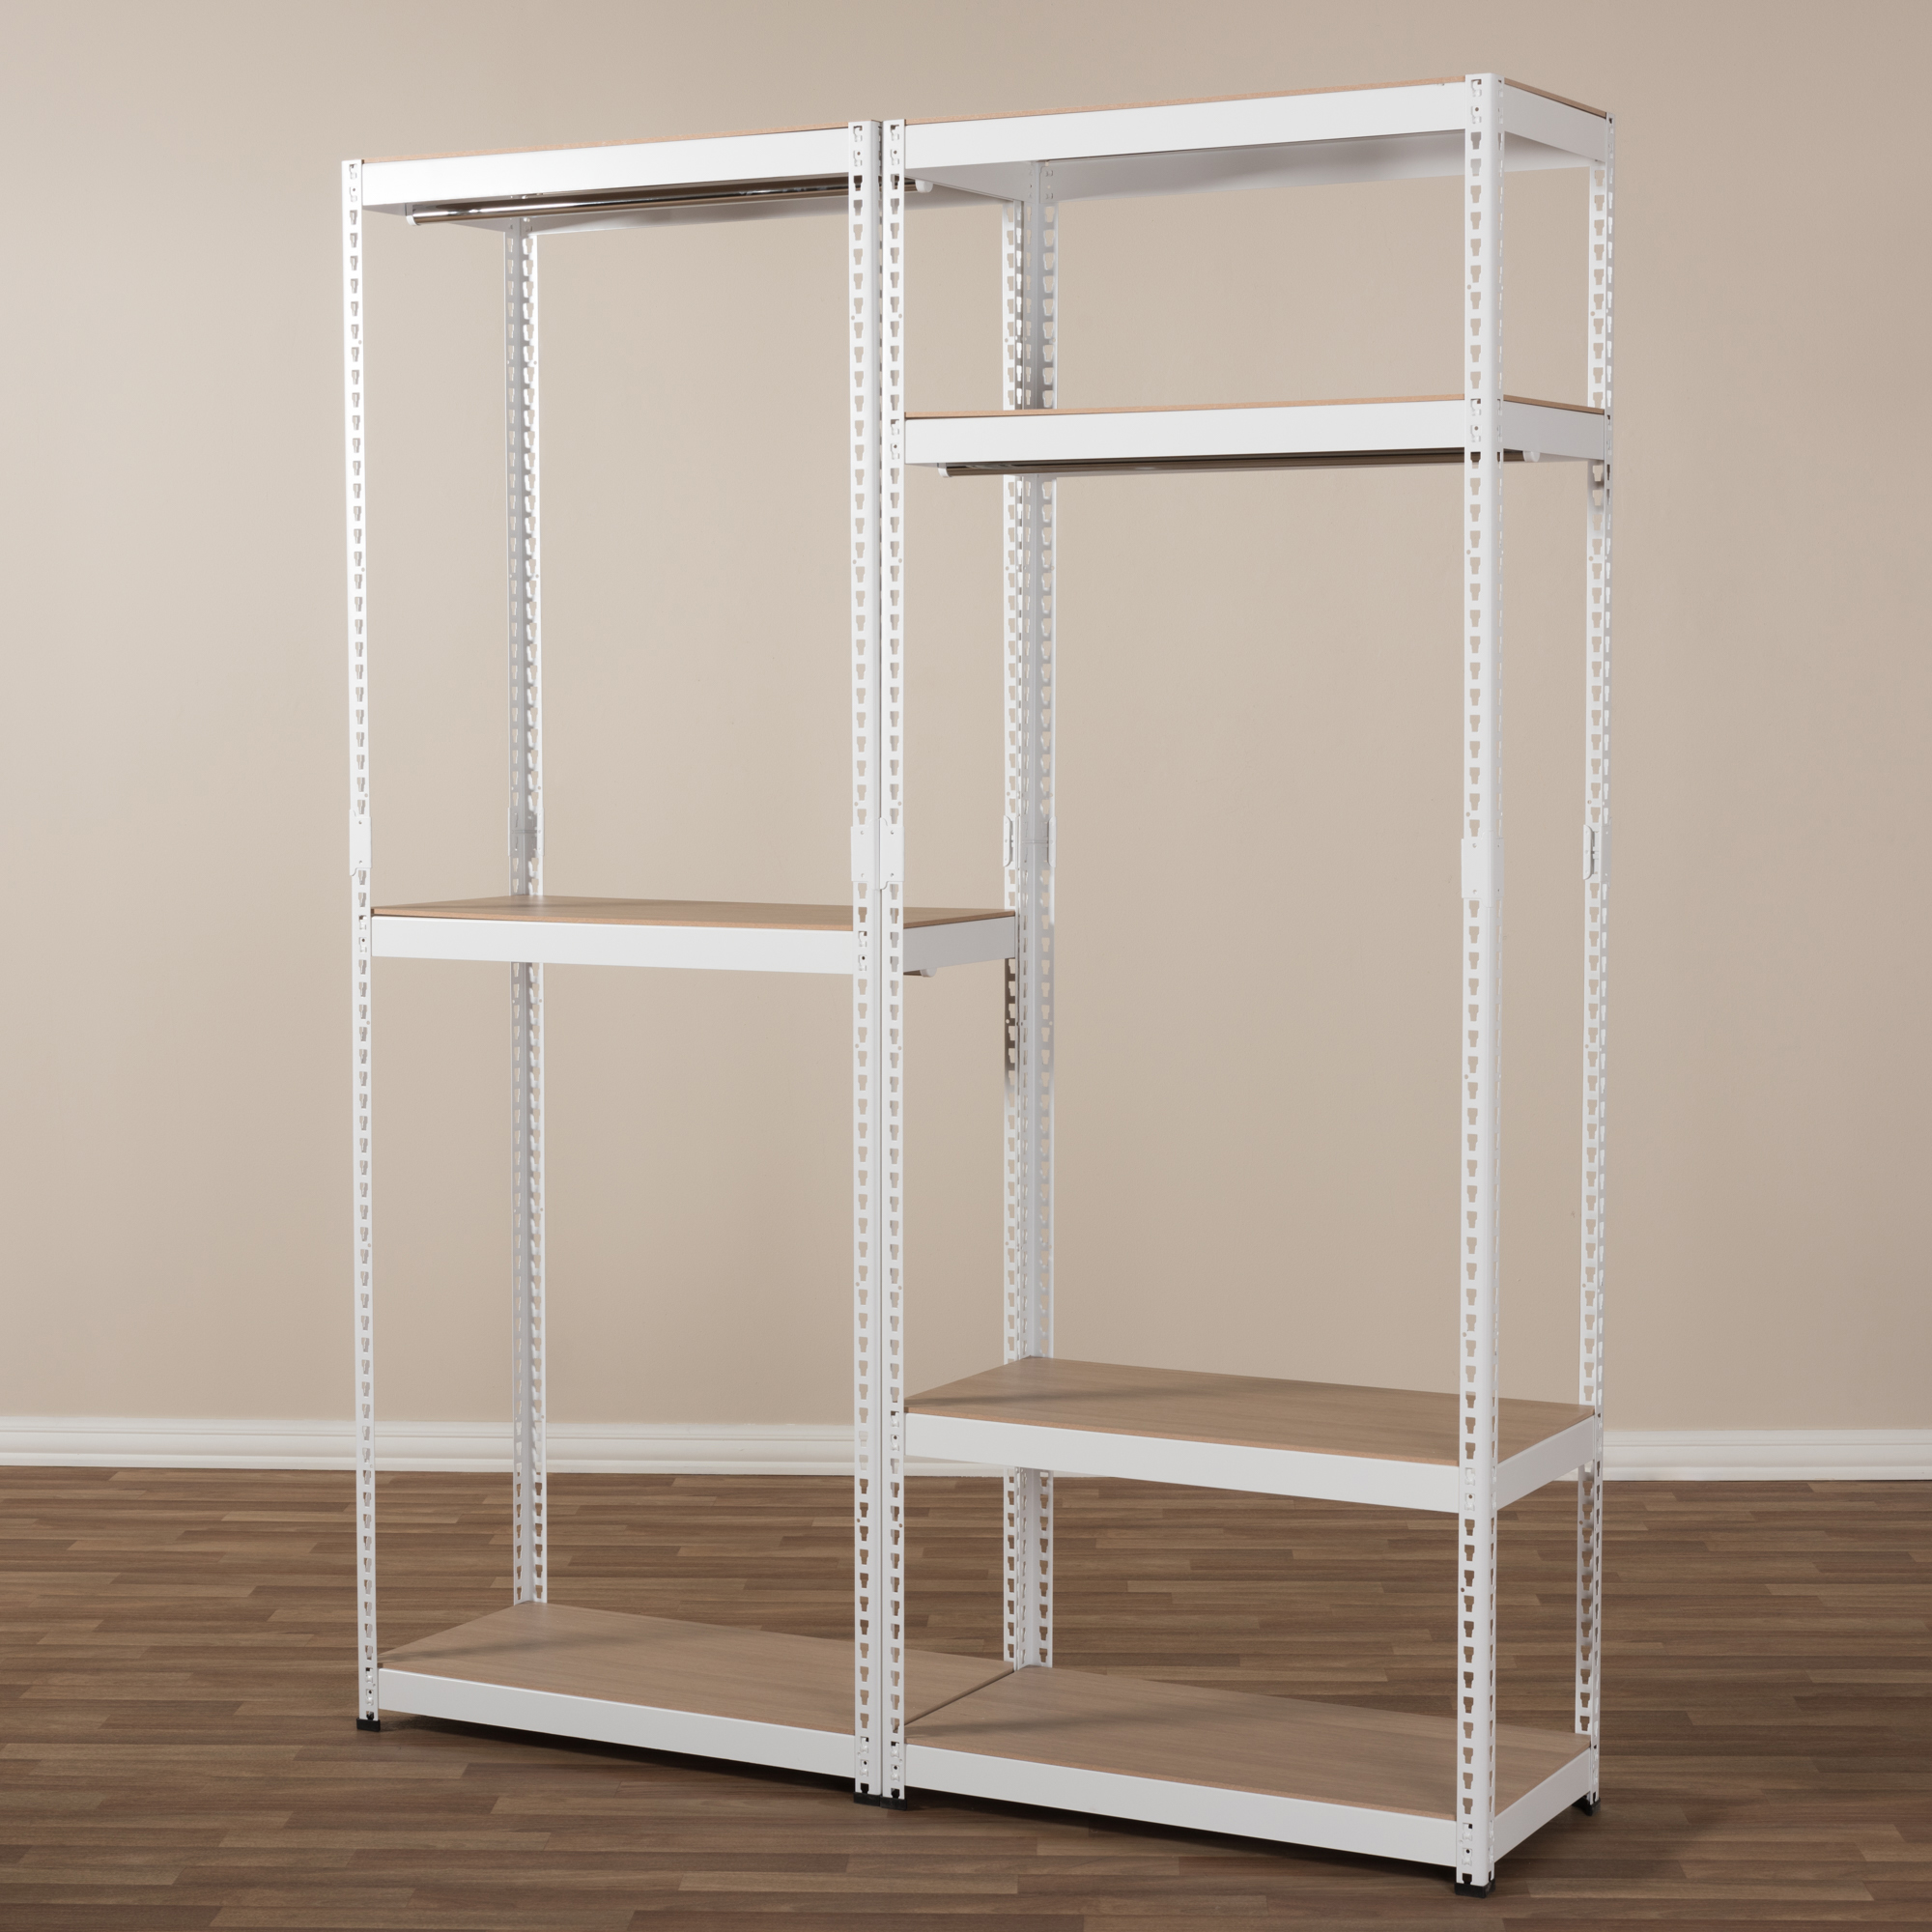 ... Baxton Studio Gavin White Metal 7 Shelf Closet Storage Racking  Organizer   BSOWH06/WH09 ...